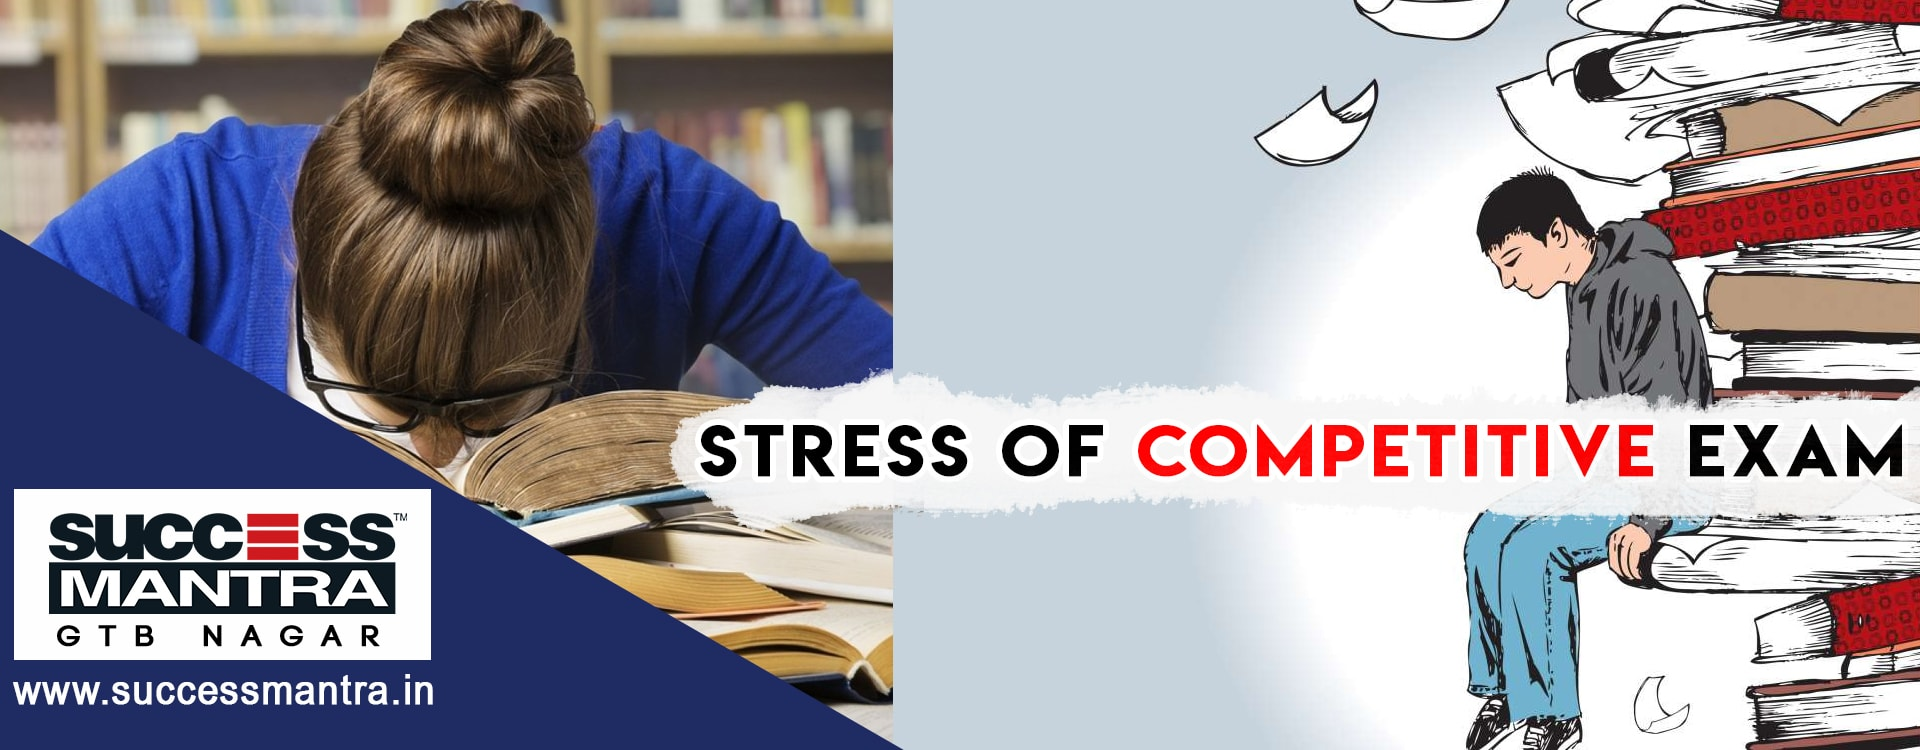 HOW TO COMBAT STRESS WHILE PREPARING FOR COMPETITIVE ENTRANCE EXAMINATION?, Coping with examination stress, SUCCESS MANTRA